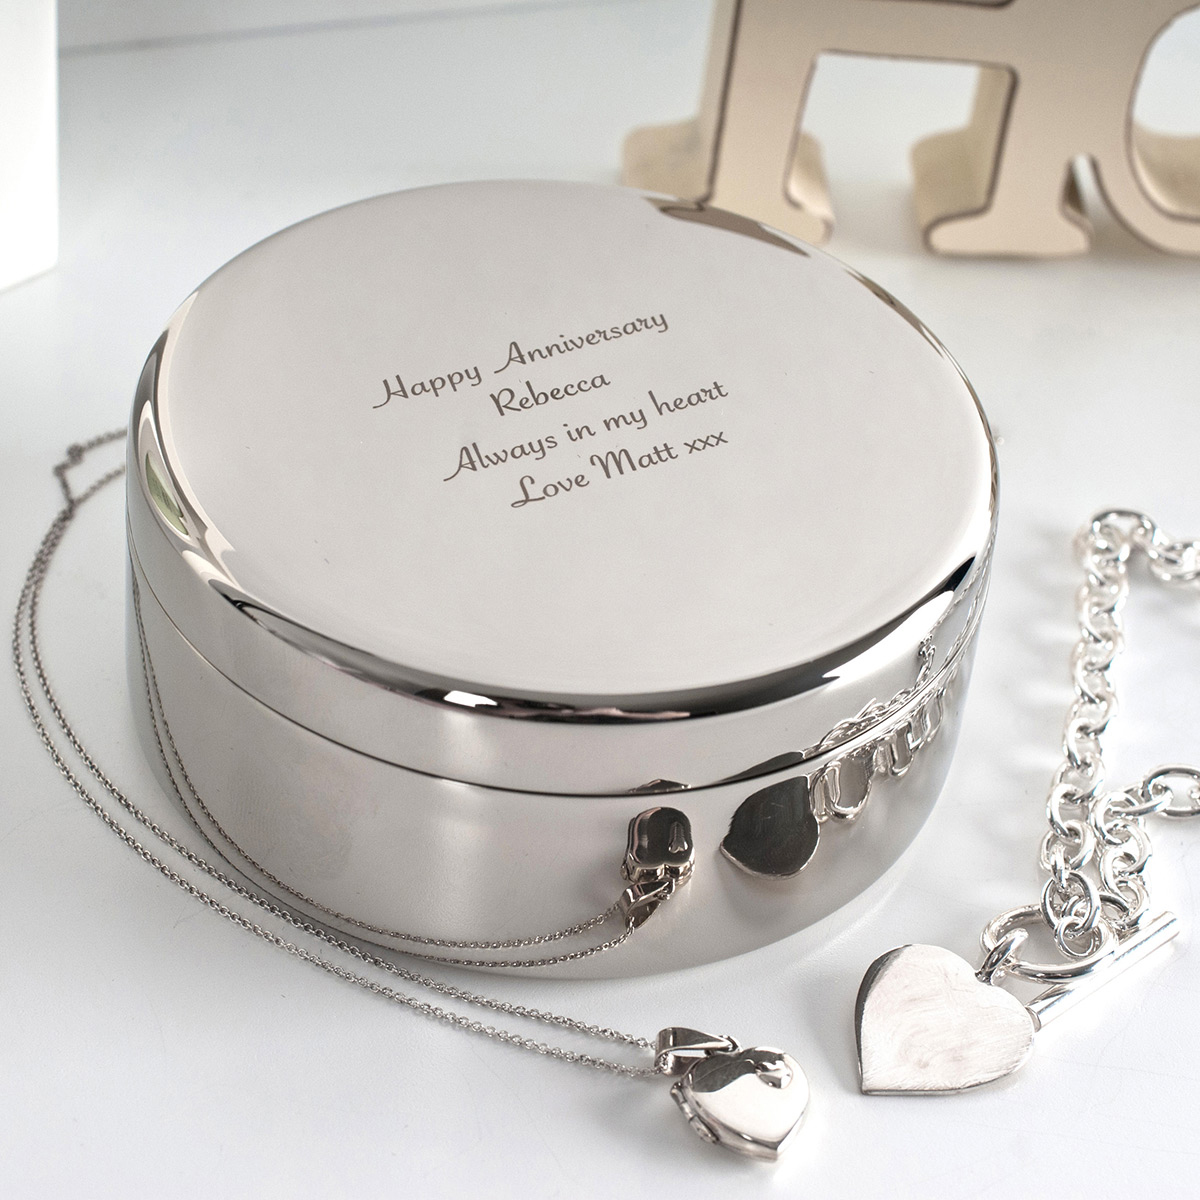 Beautiful Pure Silver Mirrored Round Jewelry Gift Box